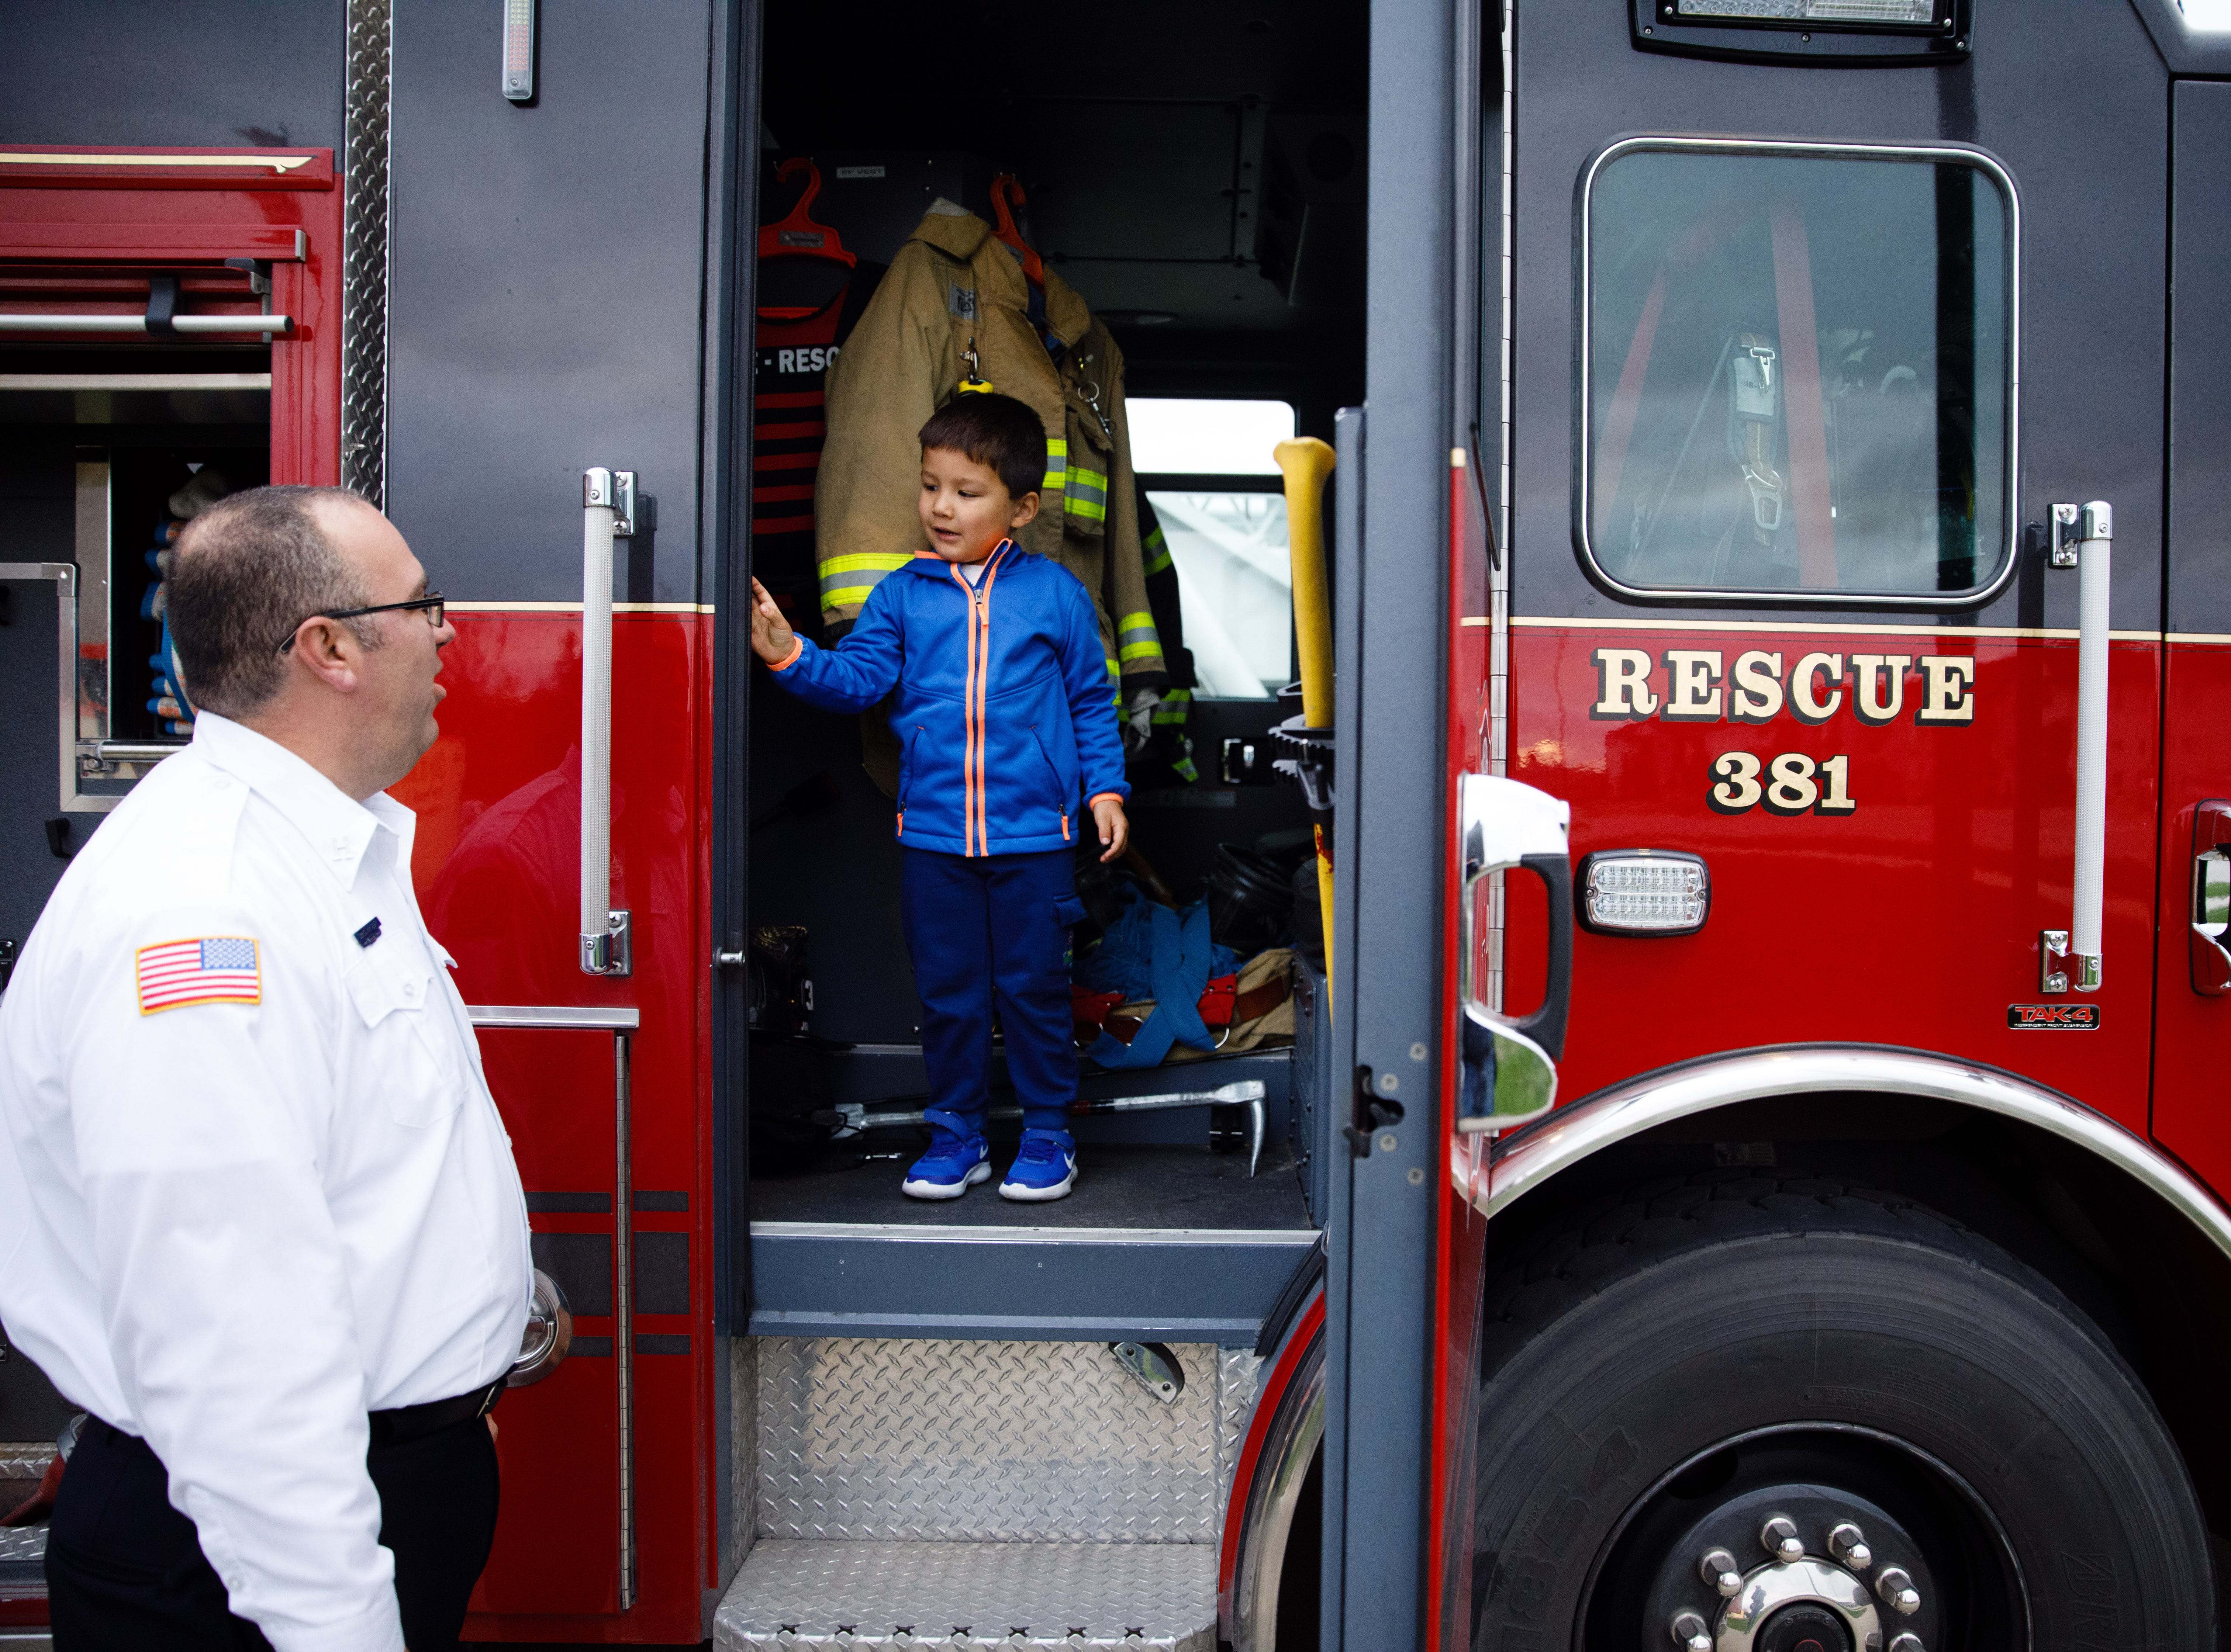 Grayson Pullen, 4, of Johnston checks out a fire truck while talking to Fire Marshall Craig Van Huel Wednesday, Oct. 10, 2018, during the Johnston-Grimes Metropolitan Fire Department's annual Fire Prevention Week Open House at the 62nd Avenue Fire Station in Johnston.